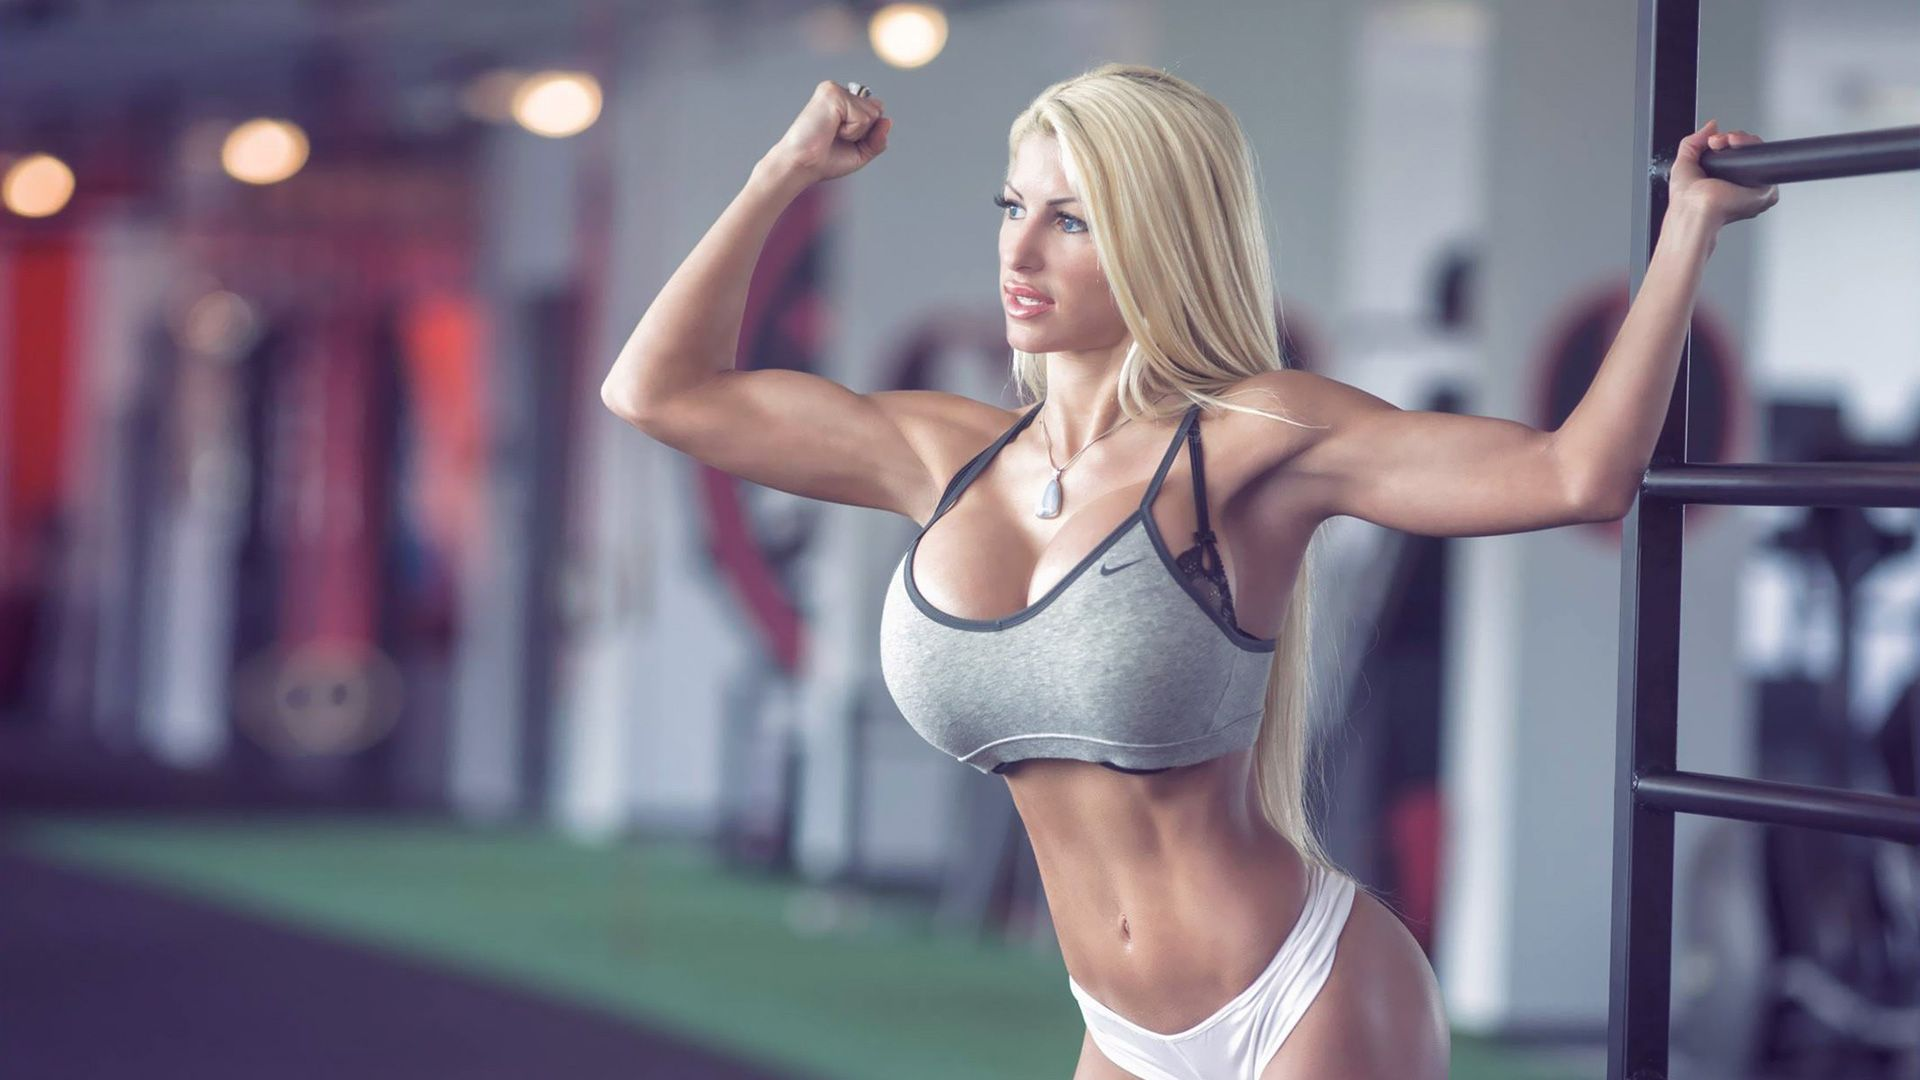 Sexy fit women